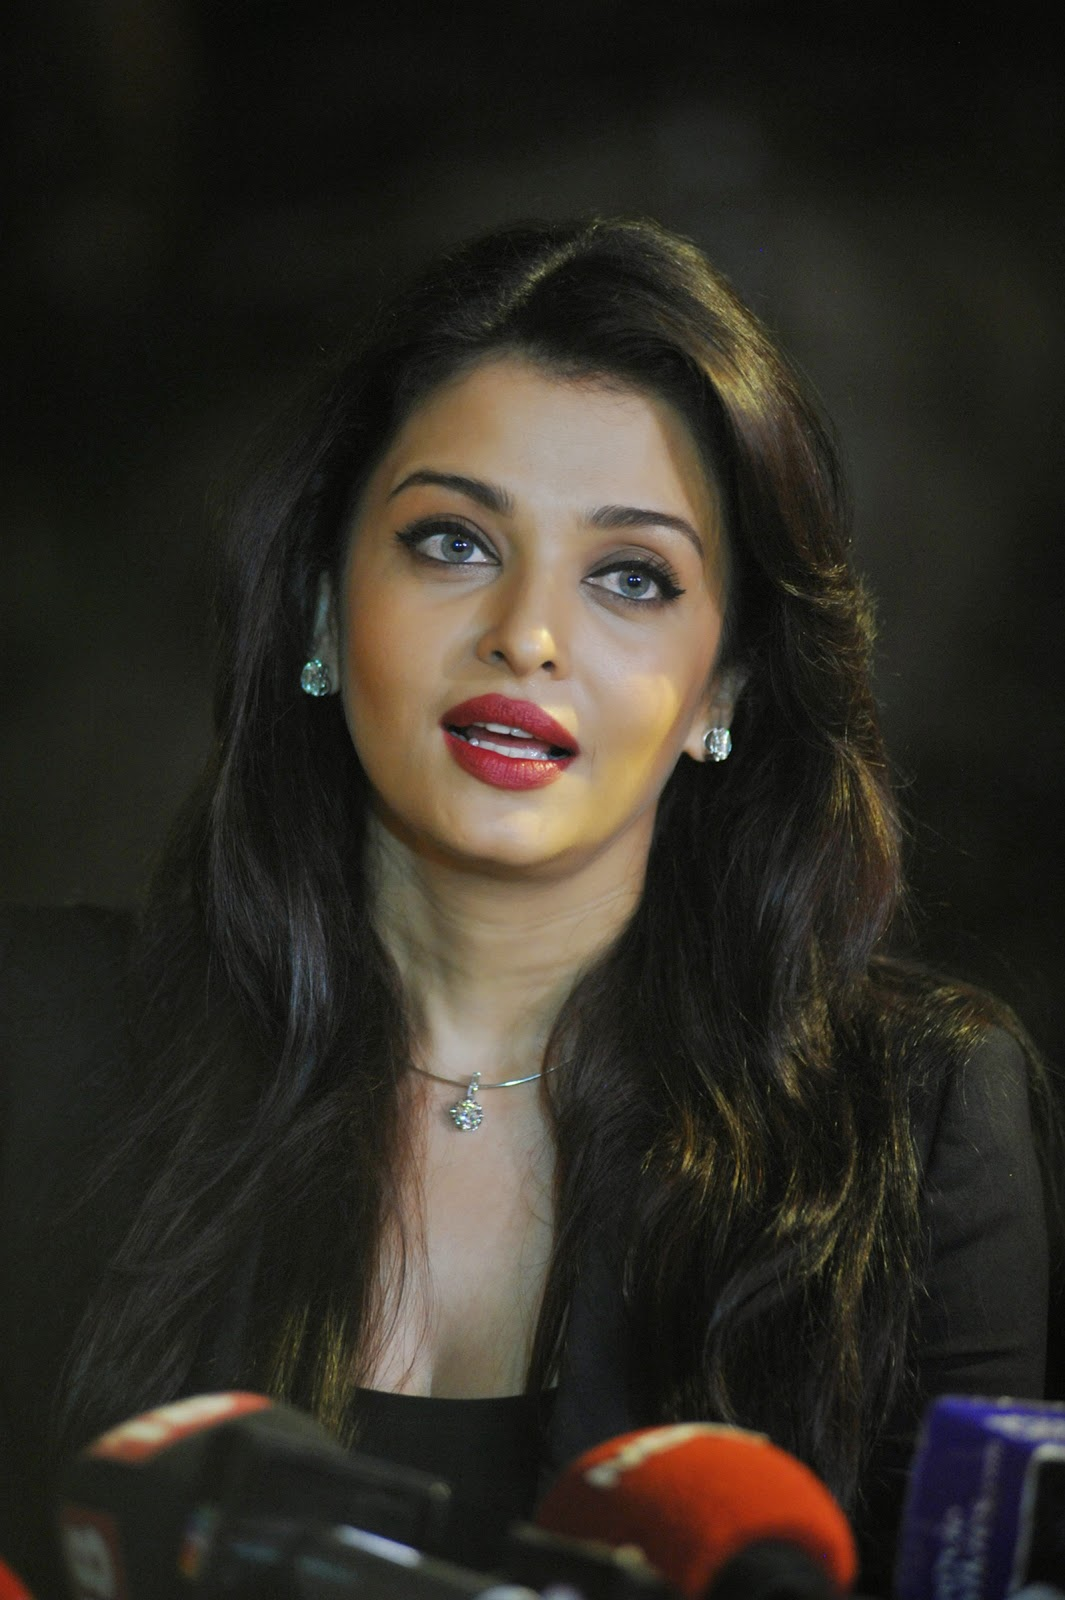 Bollywood actress Aishwarya Rai Bachchan birthday Images